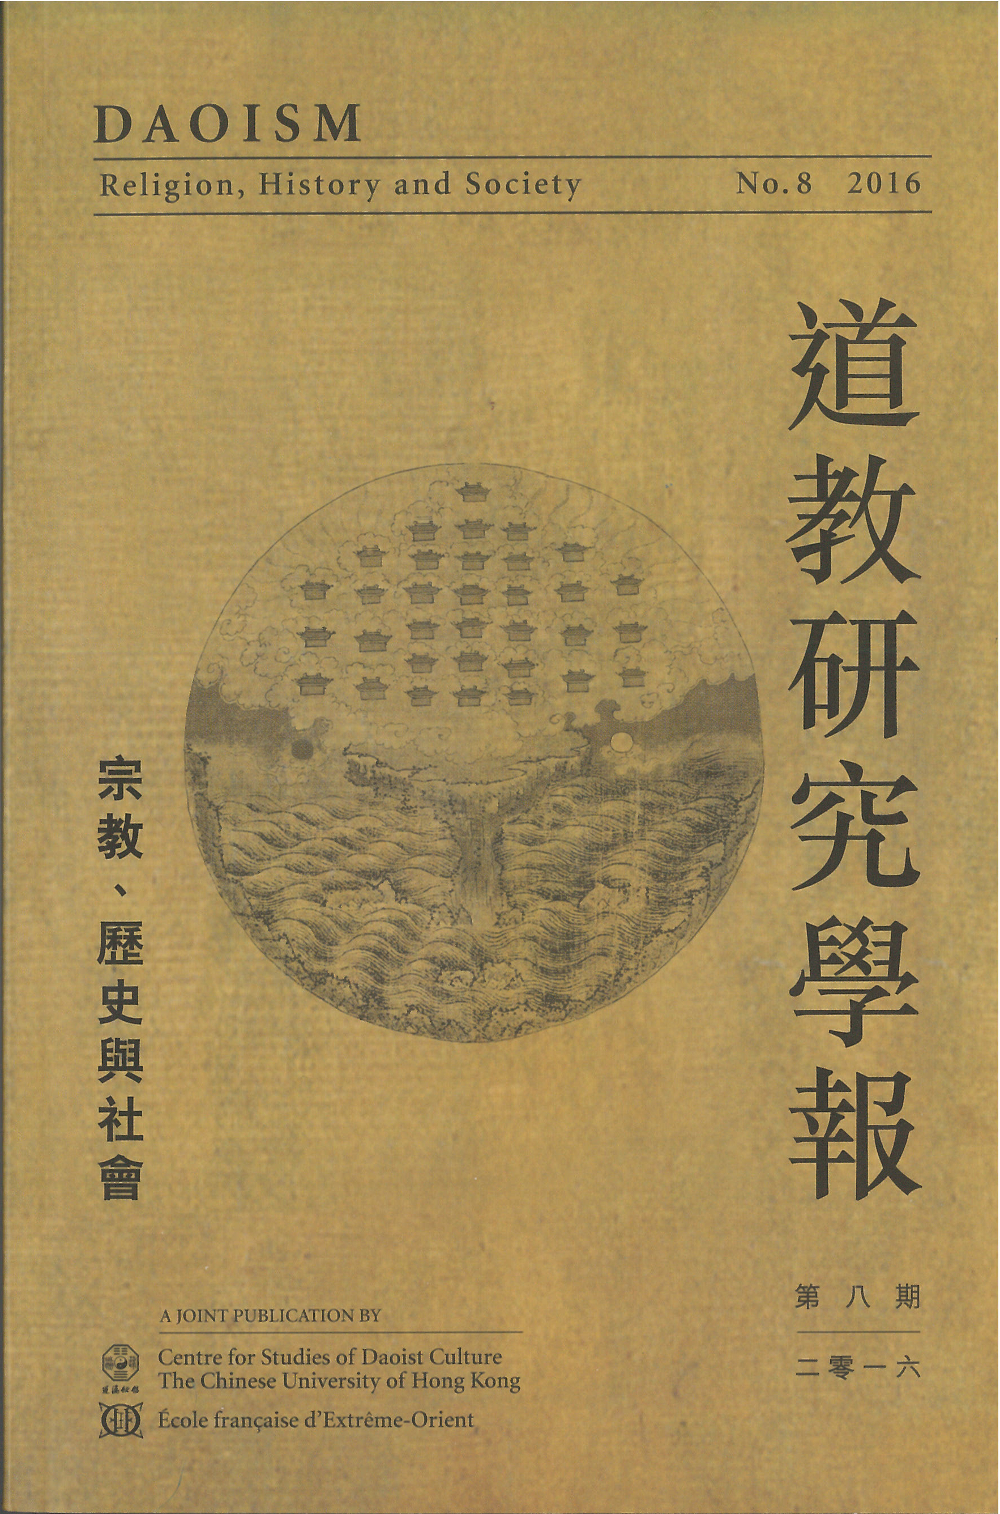 Daoism: Religion, History and Society 8 (2016)